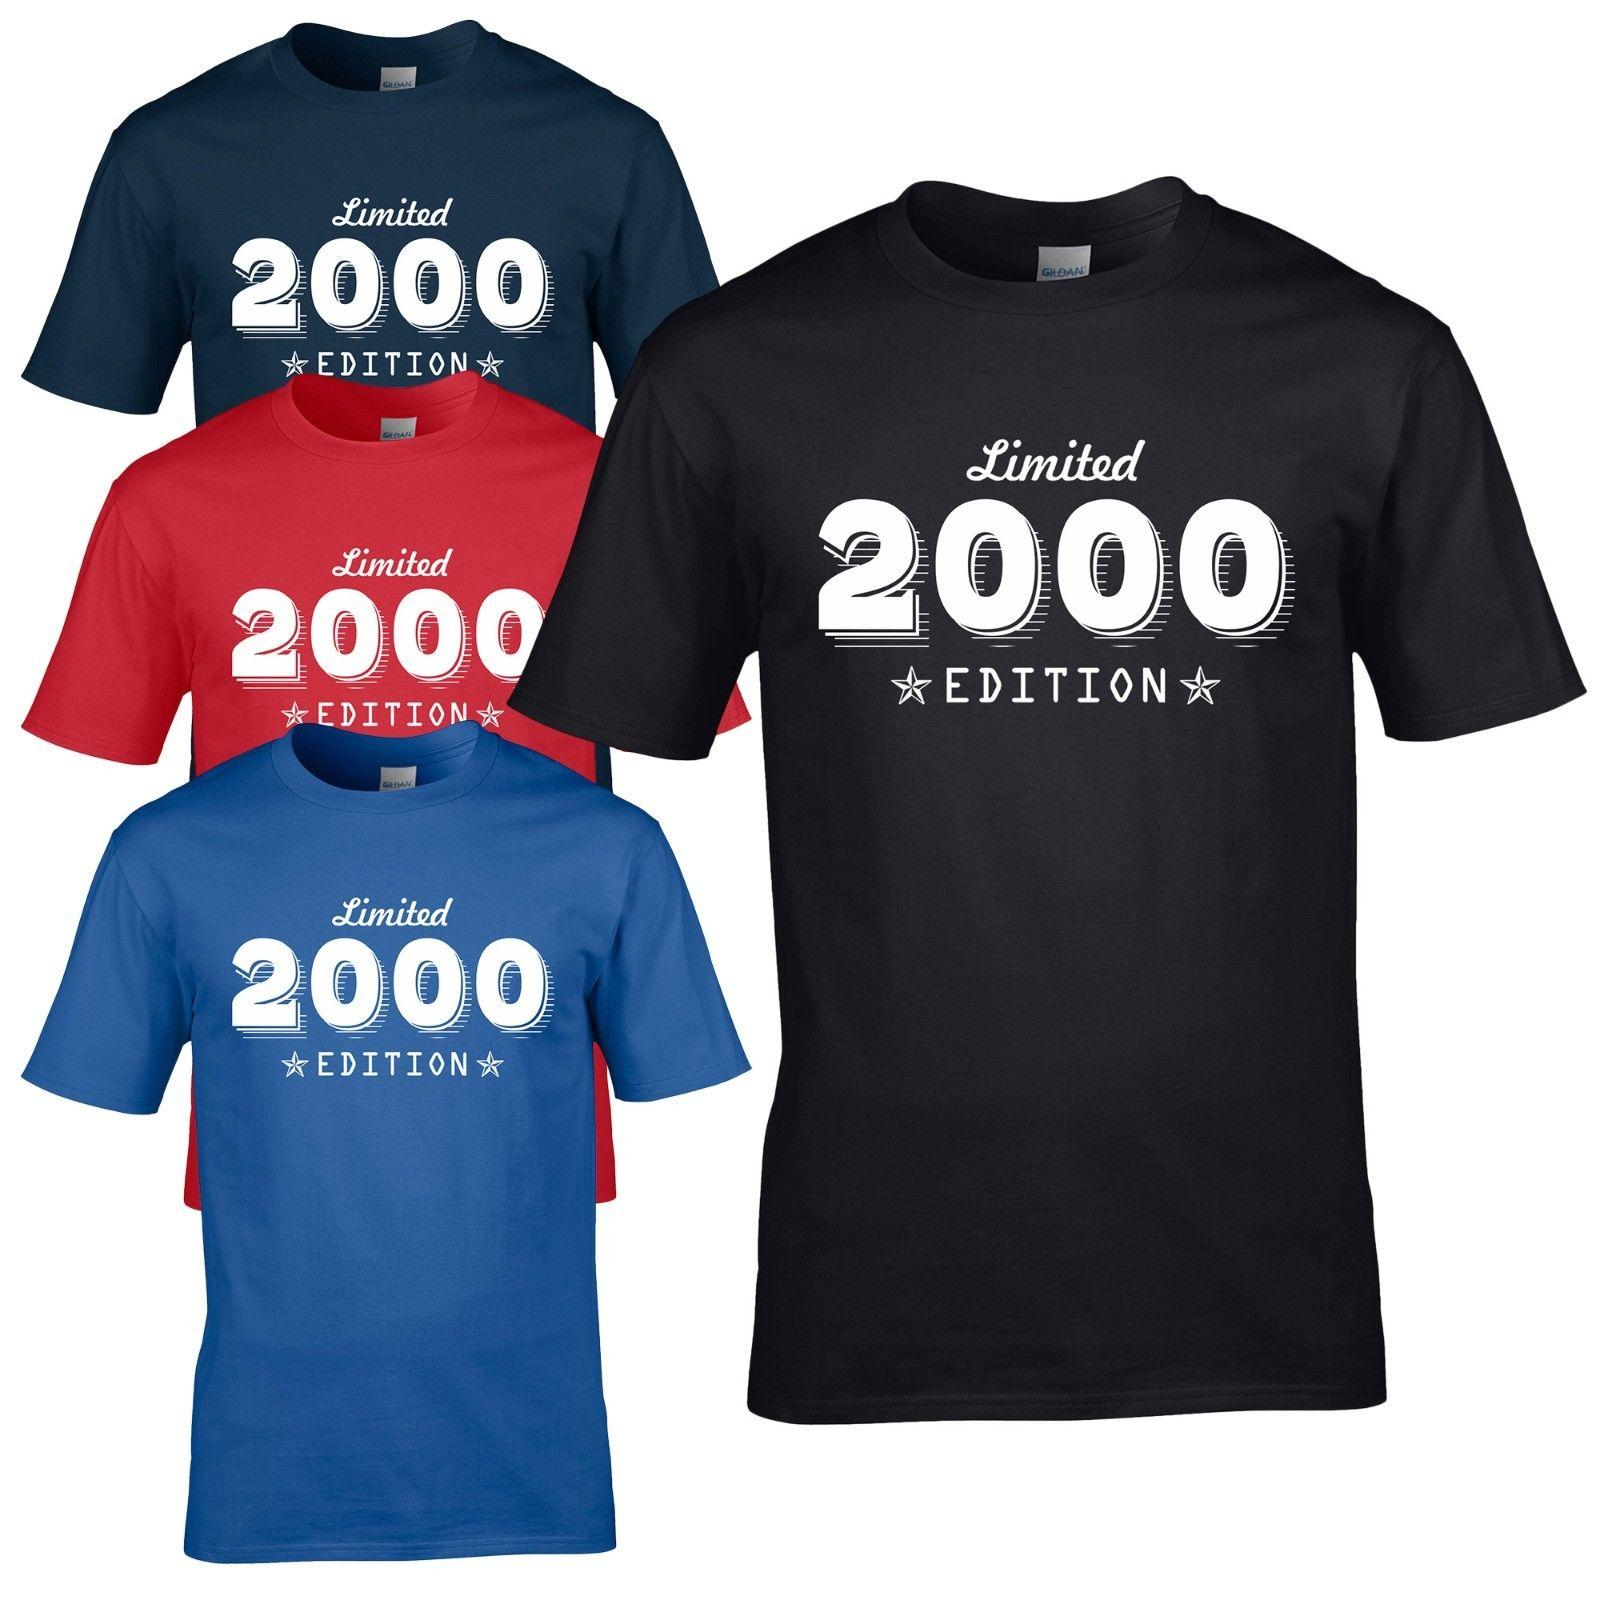 Limited Edition 2000 T Shirt Born 18th Year Birthday Age Present Funny Mens Gift Summer O Neck Tee Cheap Tee2019 Hot Tees Quirky Awesome Shirts